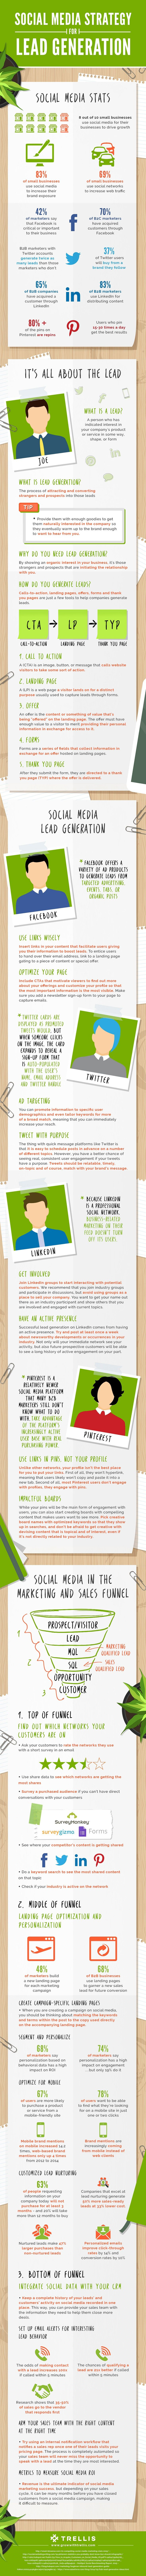 This infographic illustrates some quick facts, statistics, and explanations on how social media marketing strategy can make or break your company's lead generation and when it's best to use each...